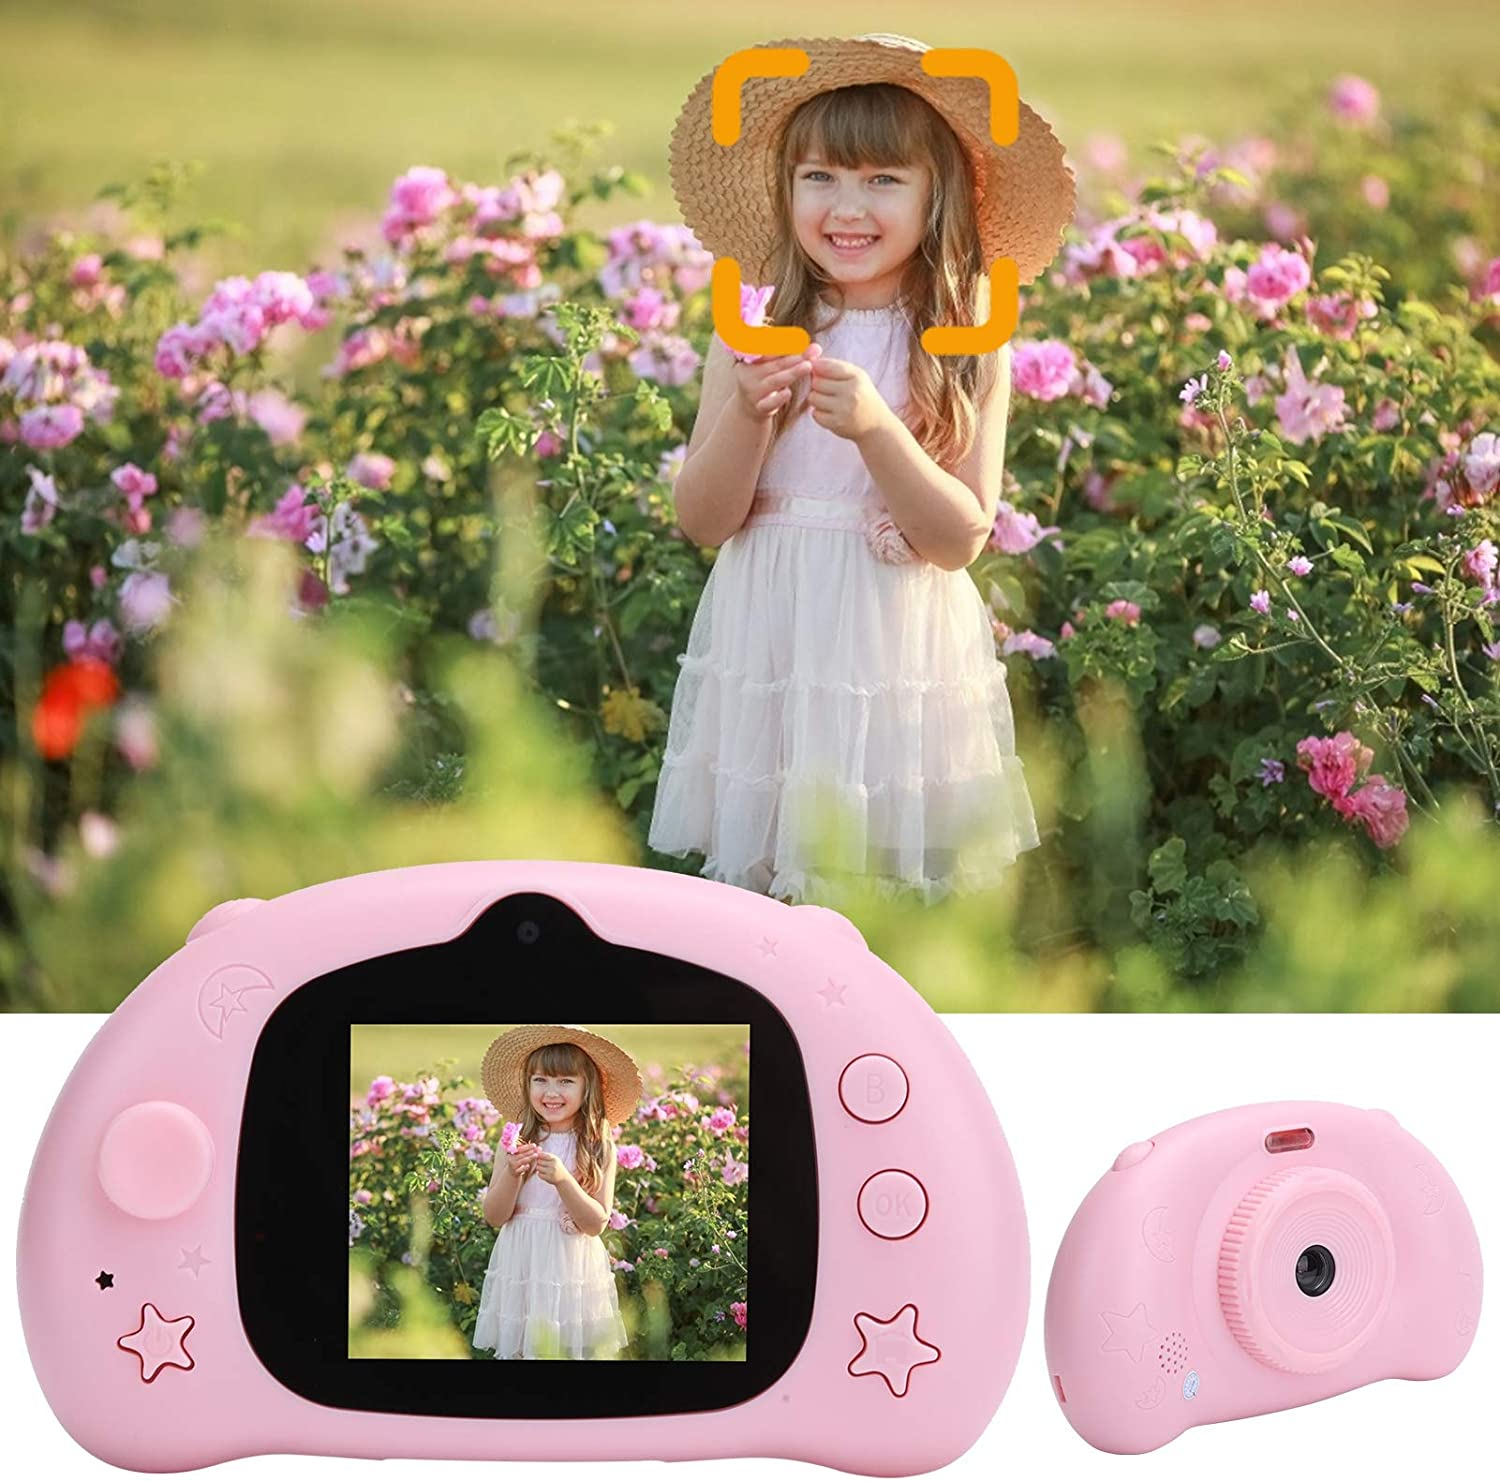 bizofft Kids Cheap mail Luxury goods order shopping Camera Good Partner Digital Came Simple Smooth and